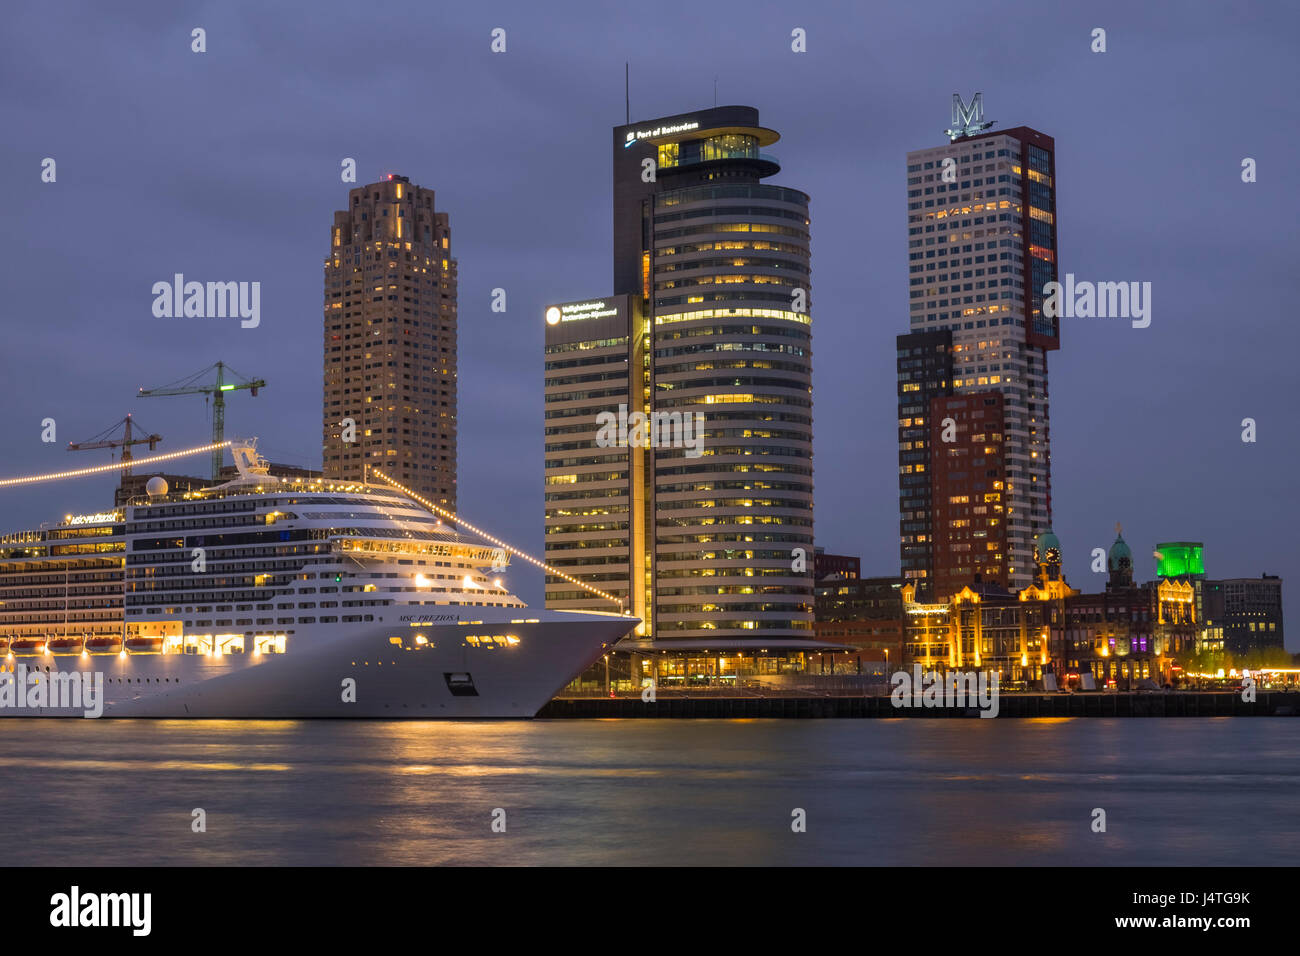 Modern Architecture Netherlands msc prezoisa cruise ship and high rise modern architecture stock